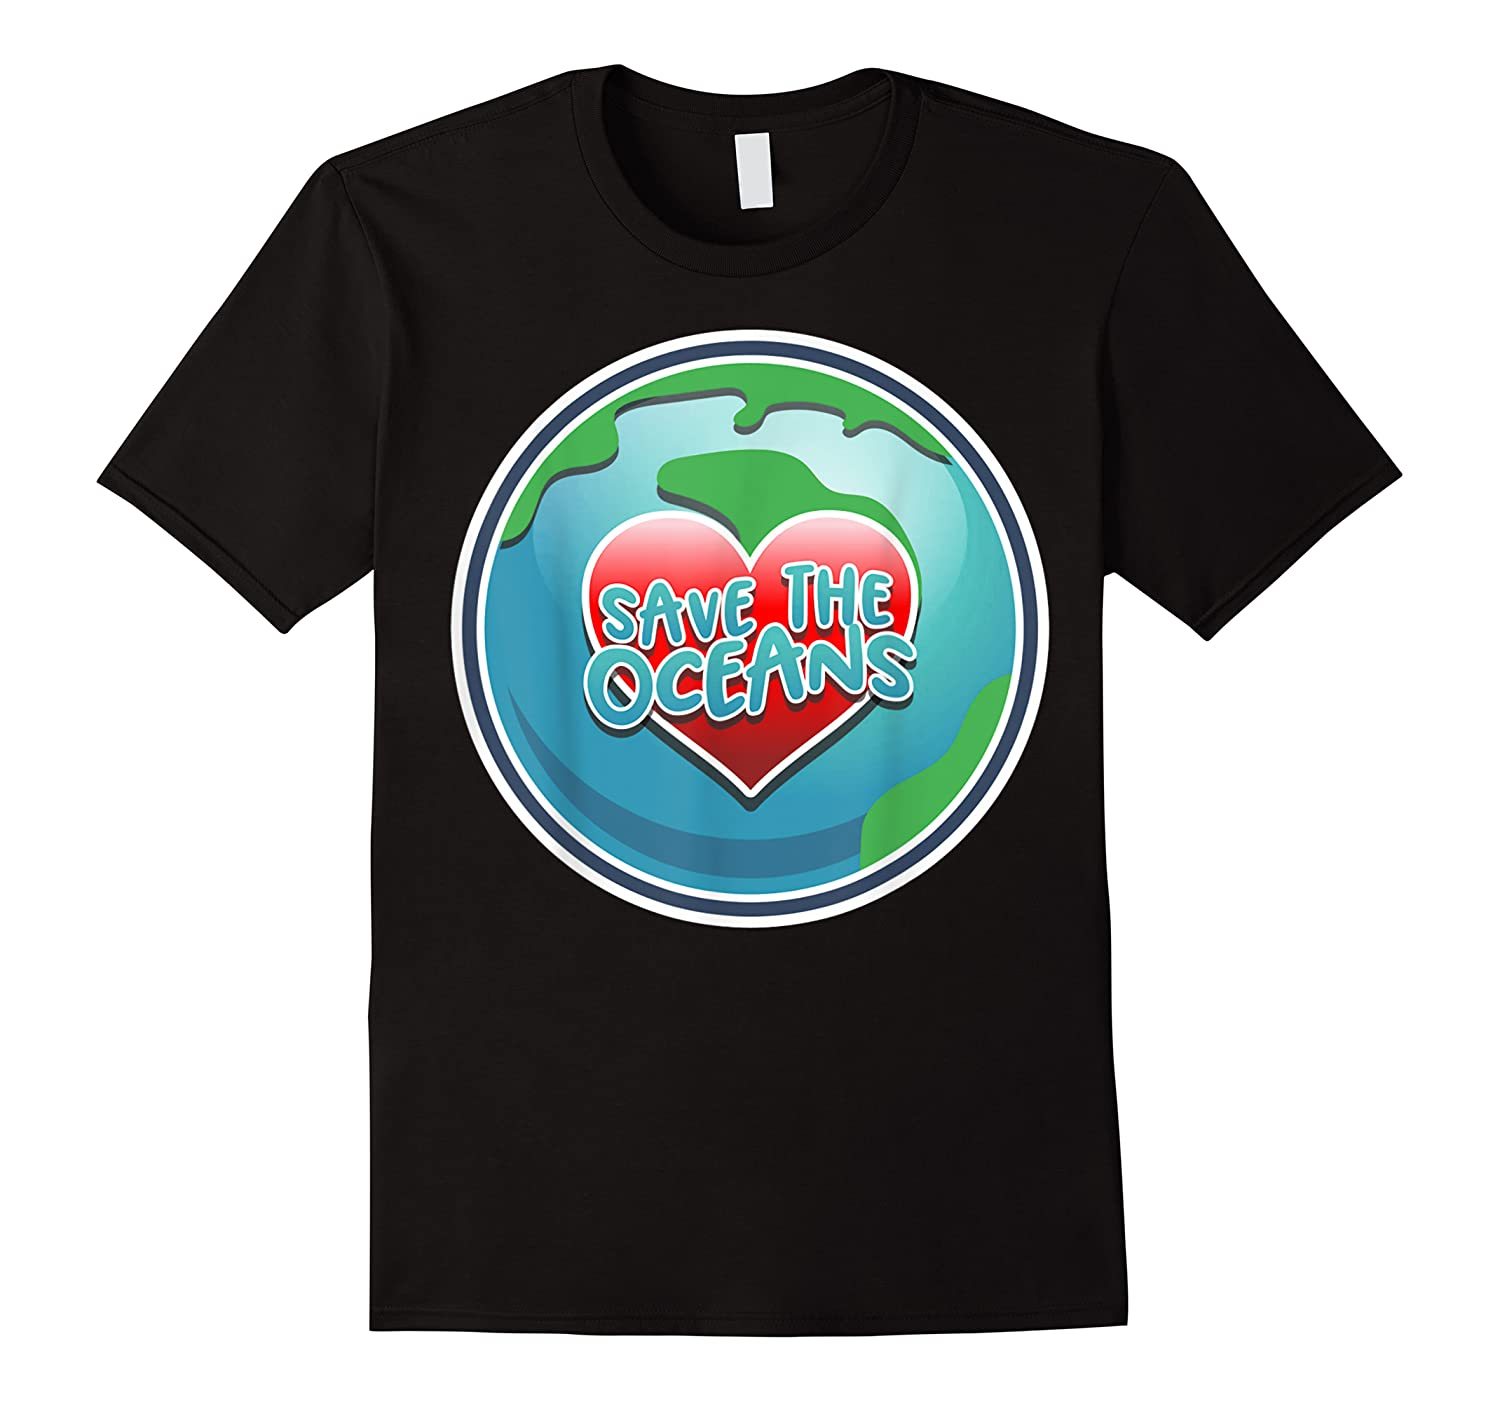 Save The Oceans Amazing World Oceans Day Gif Shirts